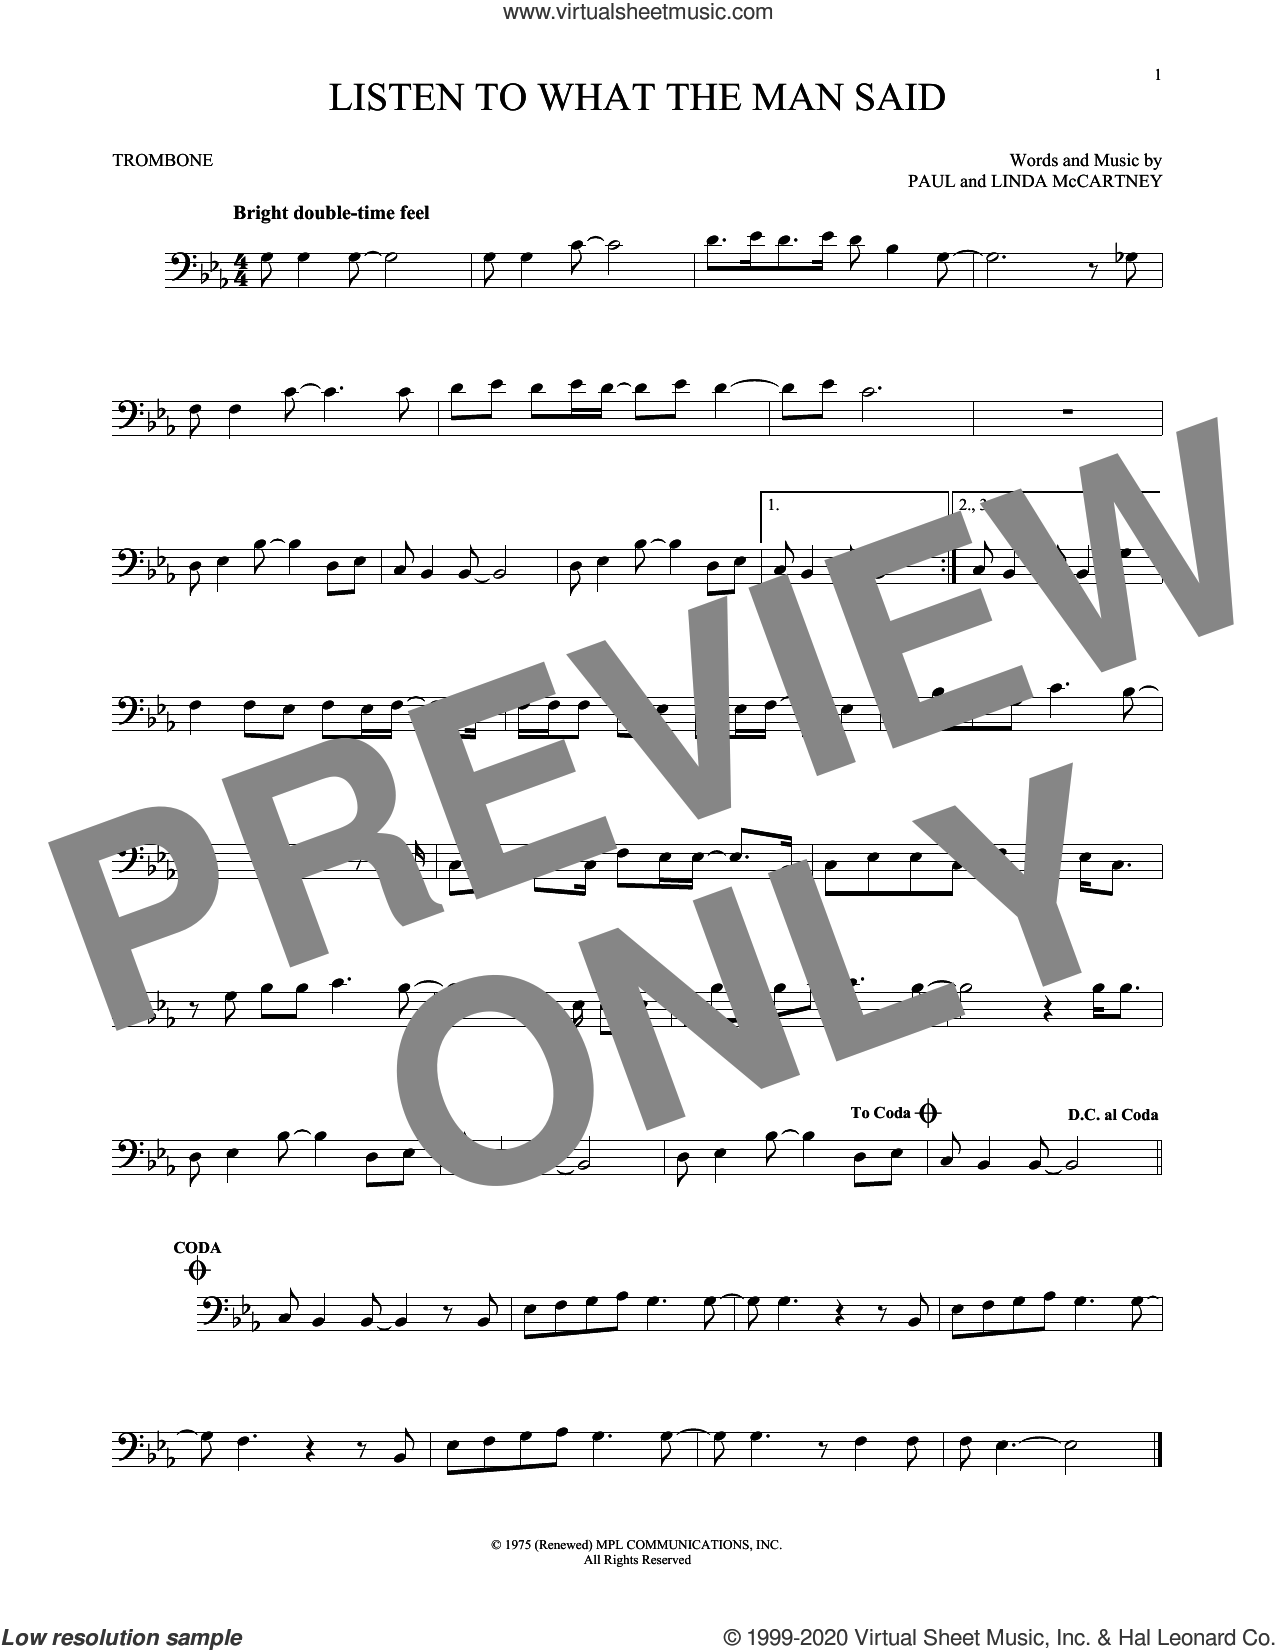 Listen To What The Man Said sheet music for trombone solo by Wings, Linda McCartney and Paul McCartney, intermediate skill level